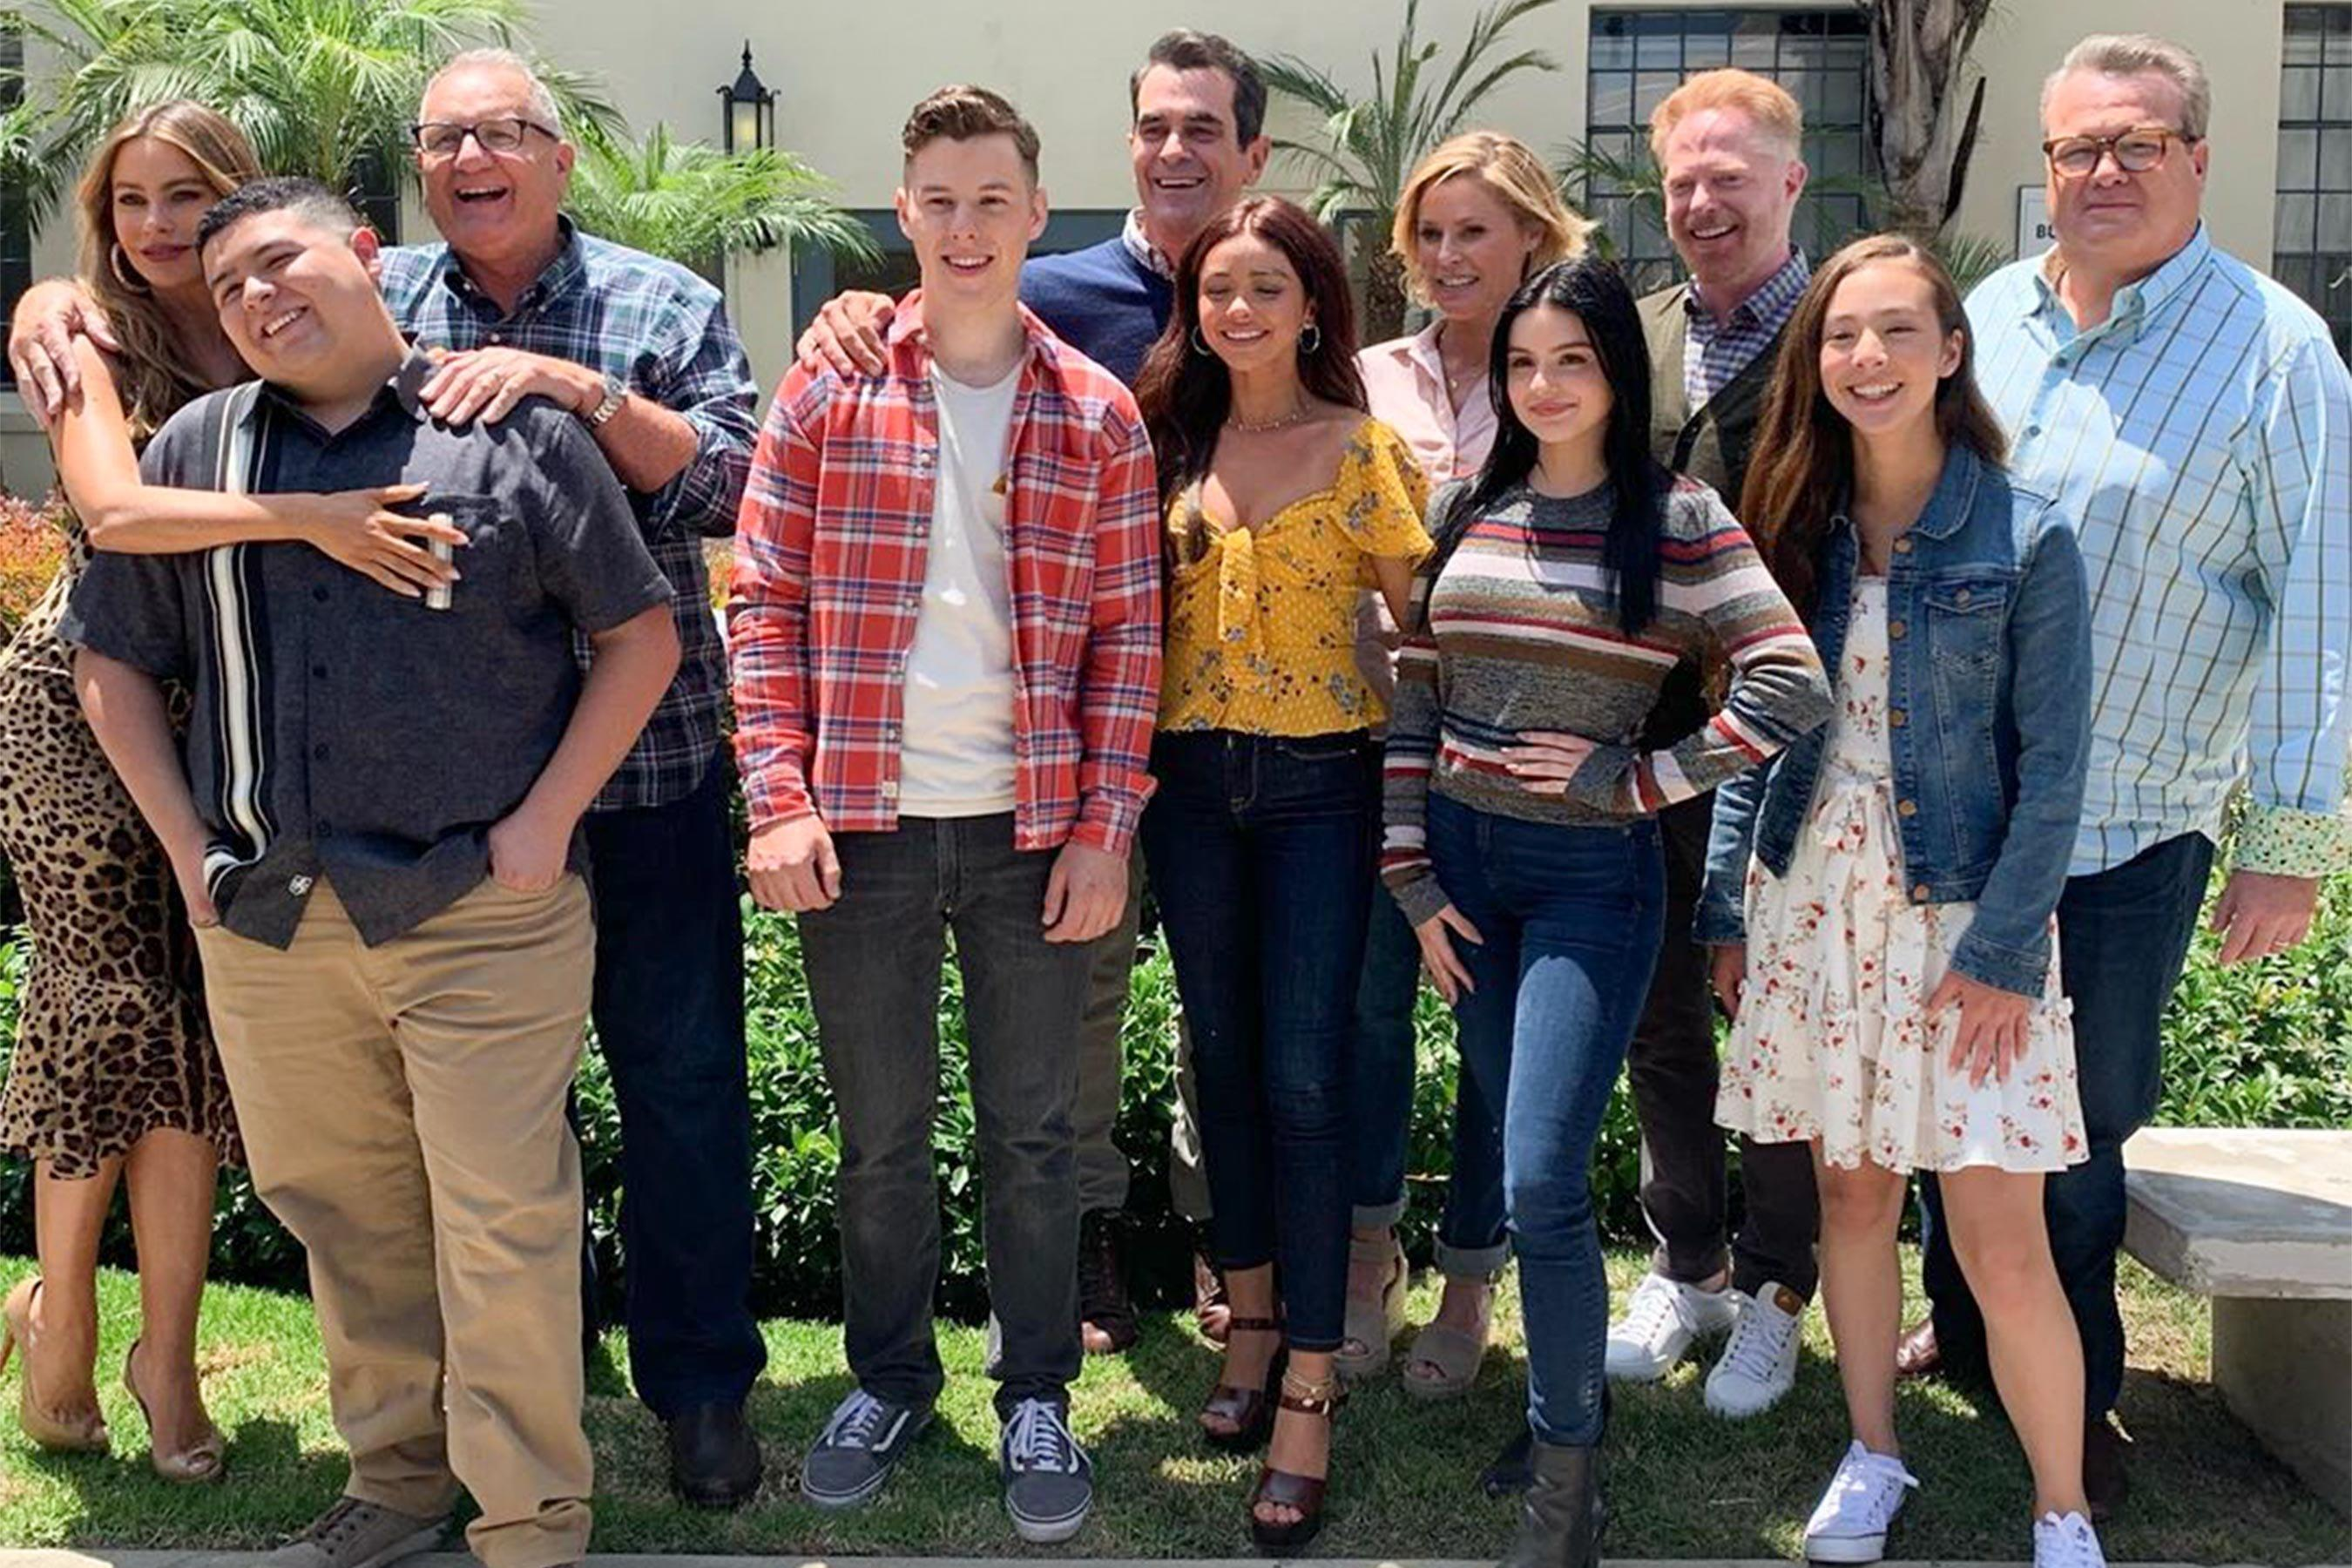 A Modern Family see the modern family cast recreate first table-read photo